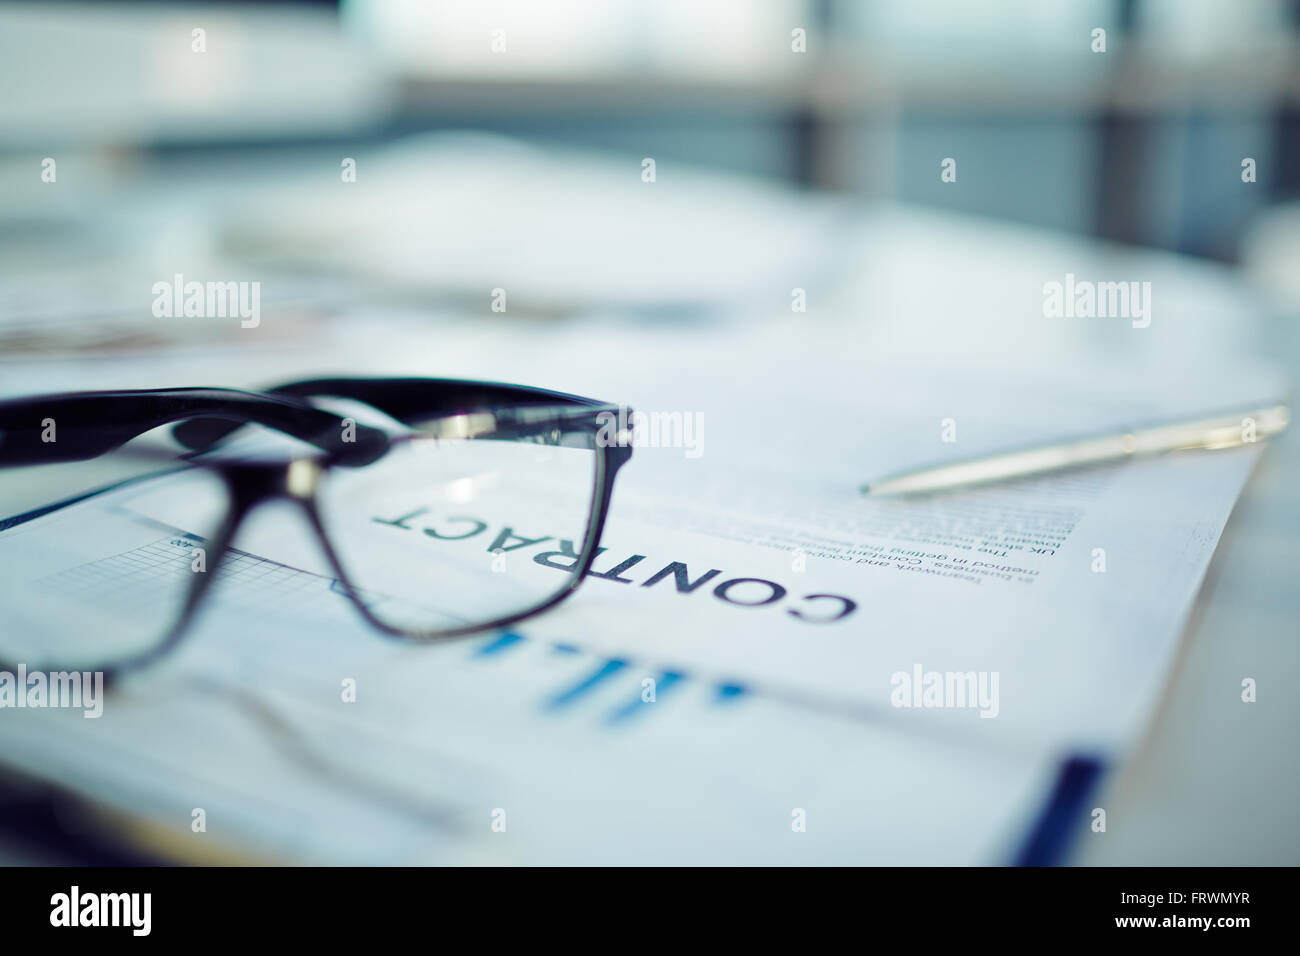 Business contract details - Stock Image